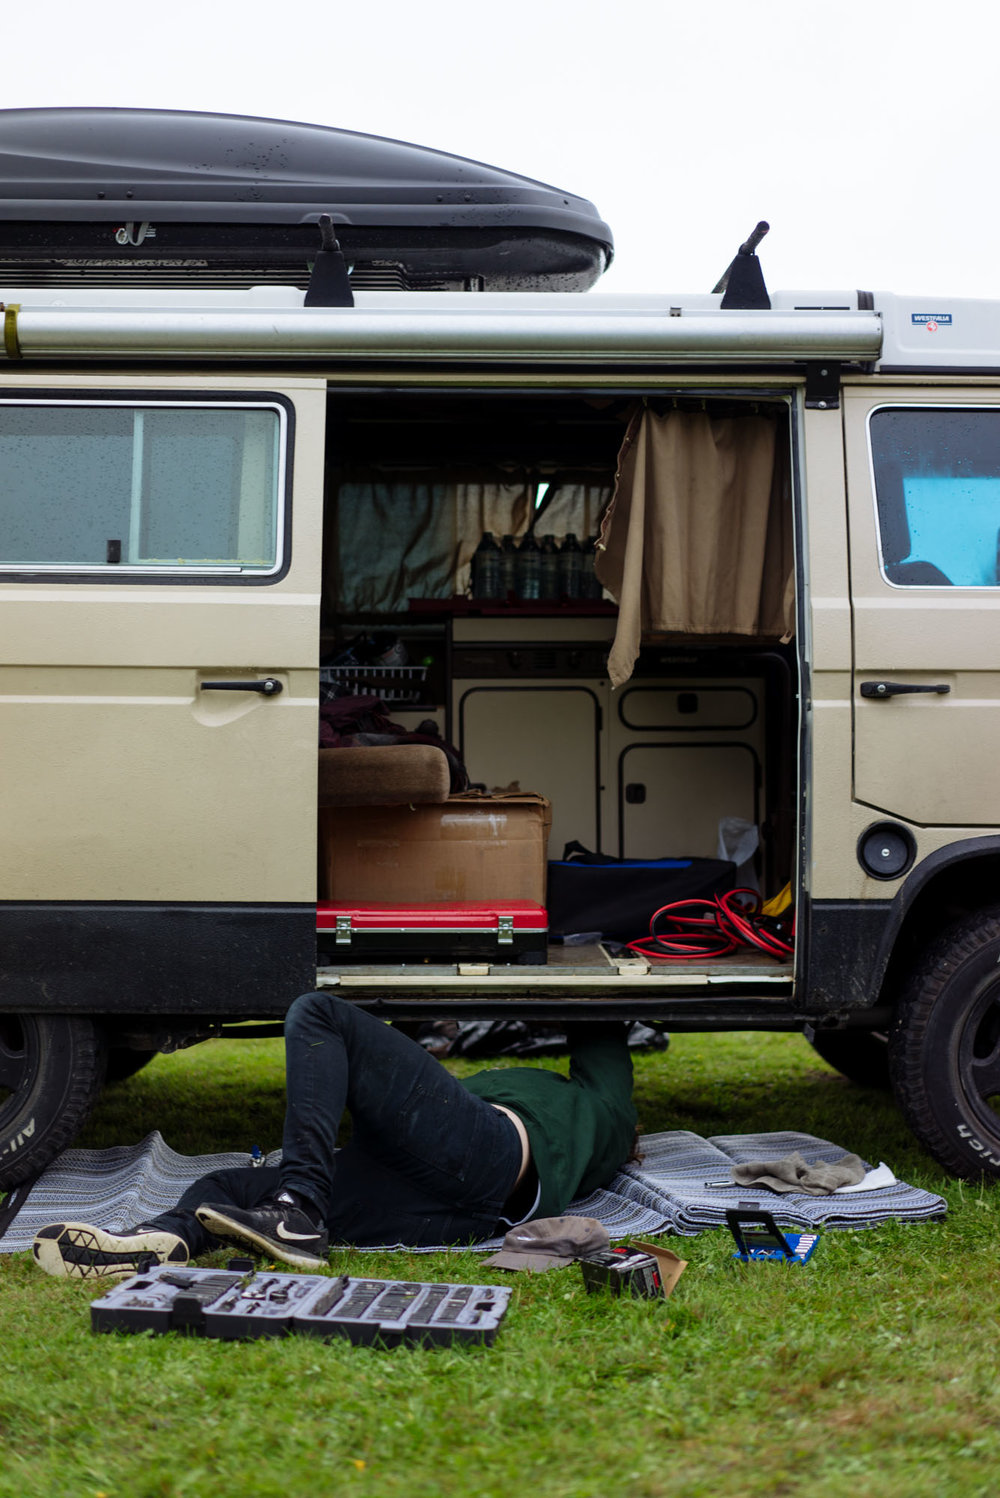 Paul trying to sort out why the Vanagon wouldn't start